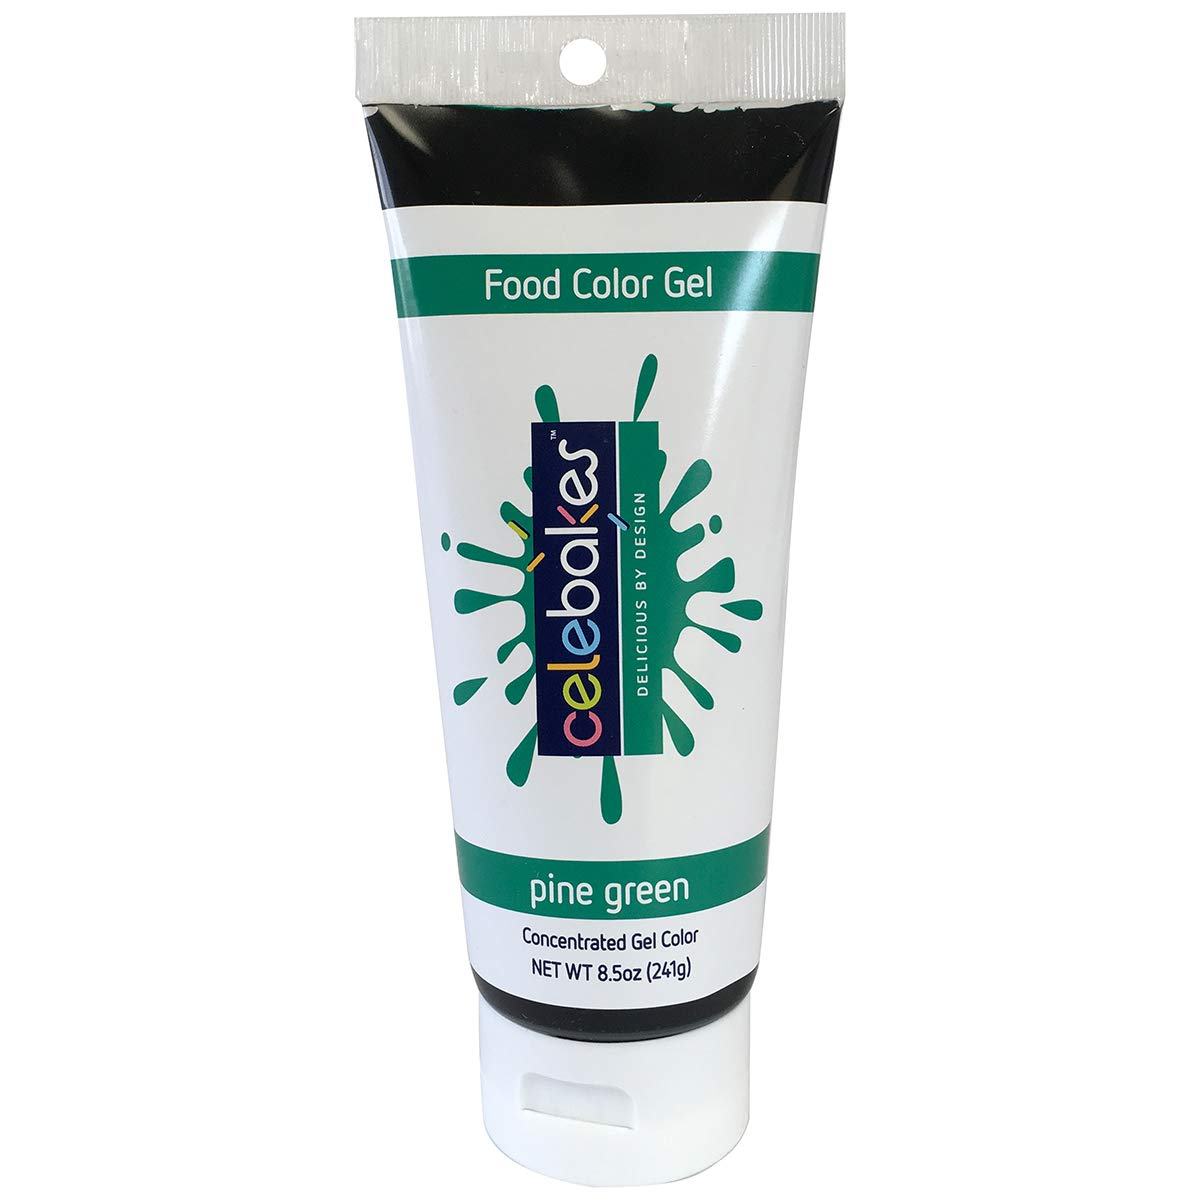 Celebakes by CK Products Pine Green Food Color Gel, 8.5 oz Tube